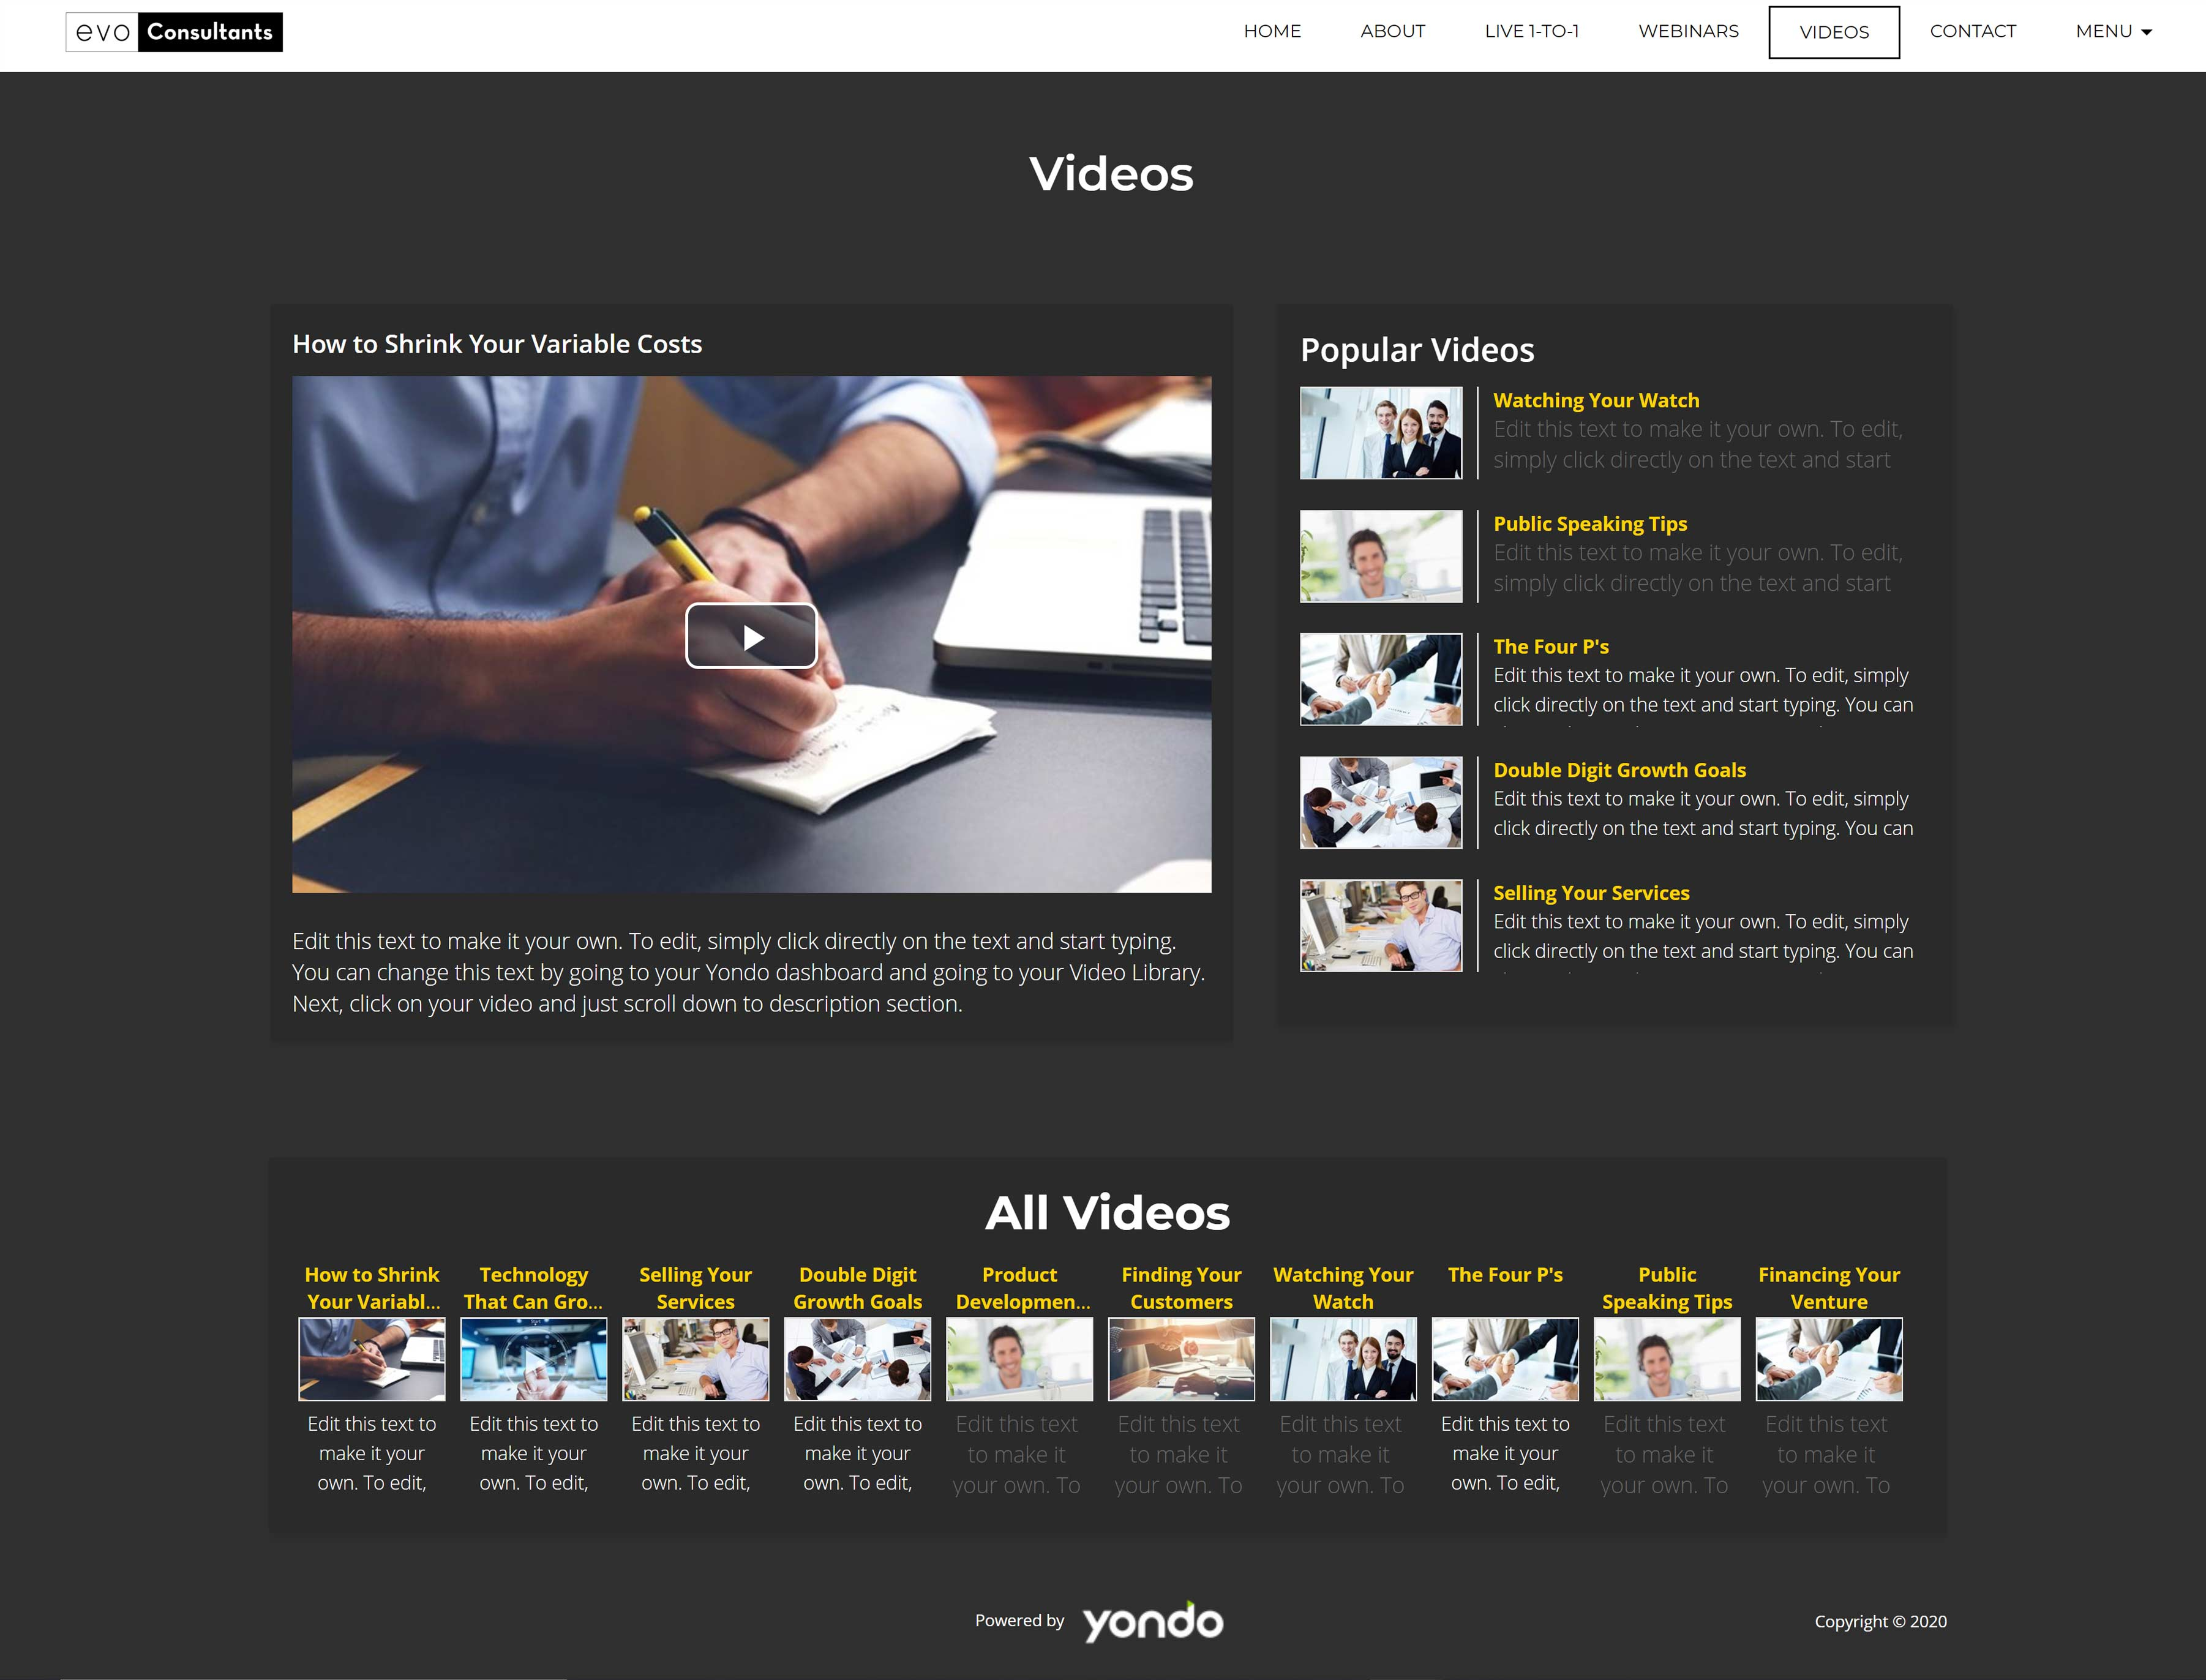 All-In-One Online Consulting Website - Evo Consultants Video On Demand Page Example